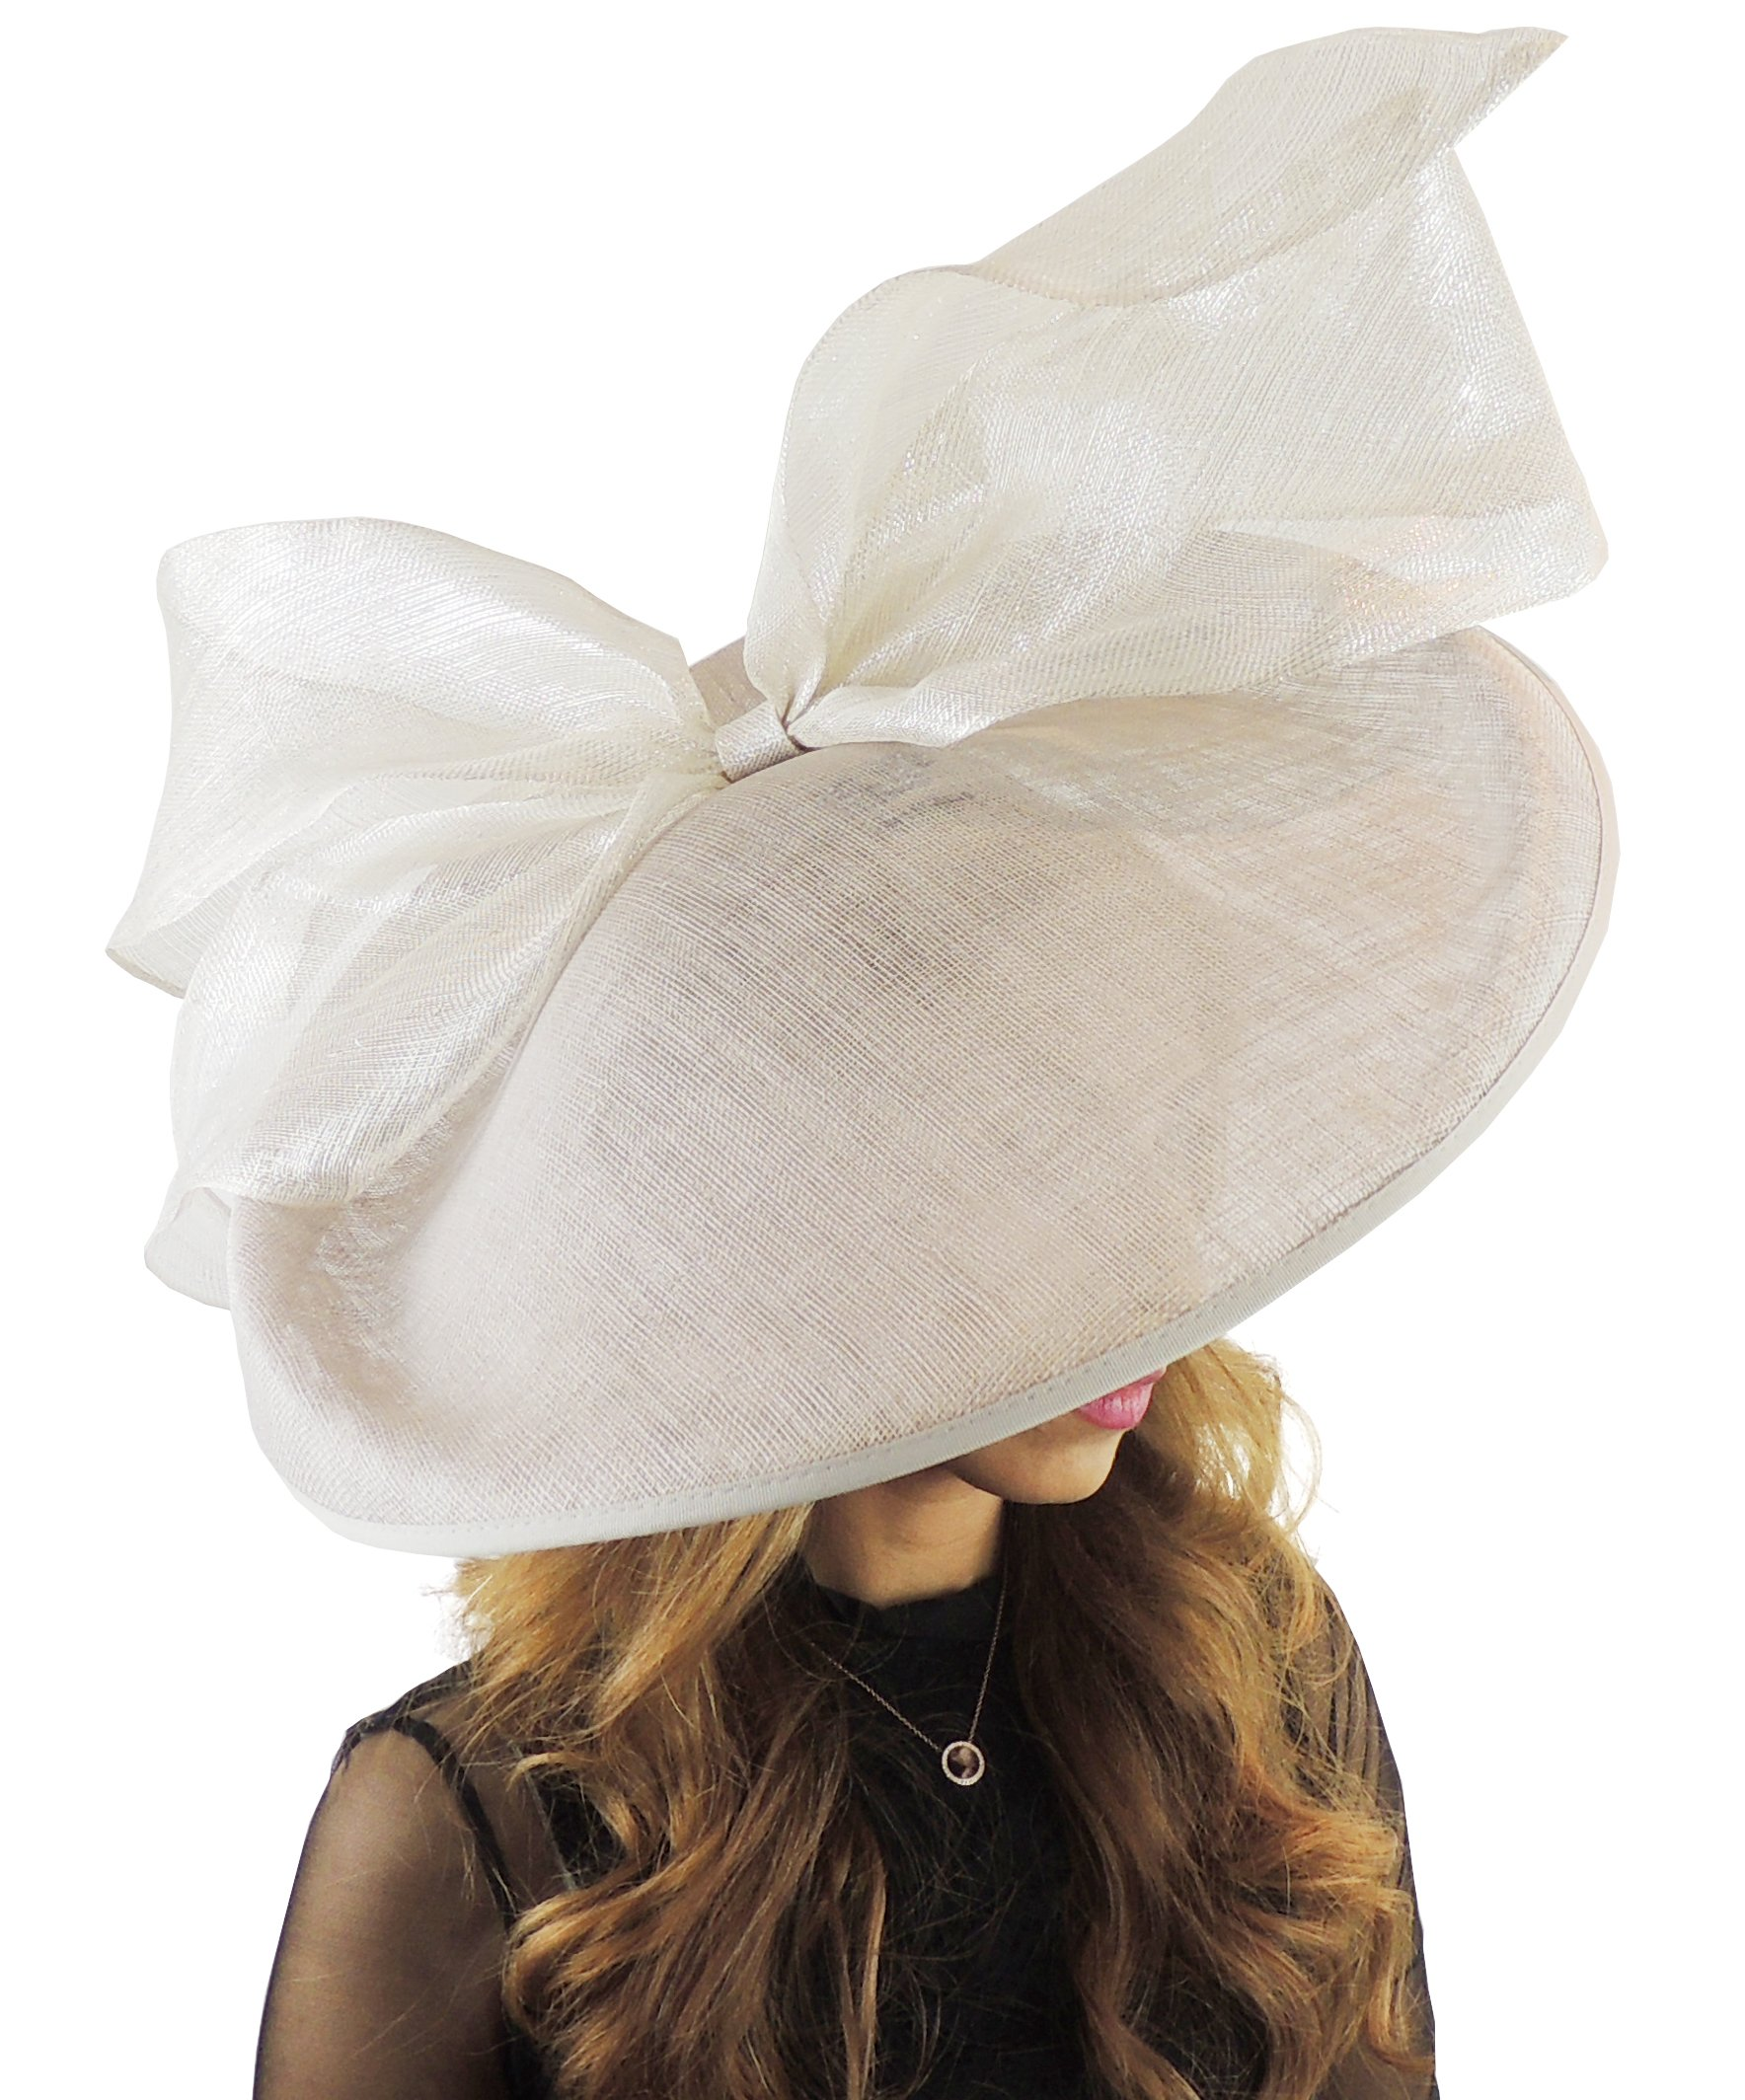 Hats By Cressida Gorgeous Barn Owl Pale Grey Large Saucer Bow Ascot Derby Wedding Hat